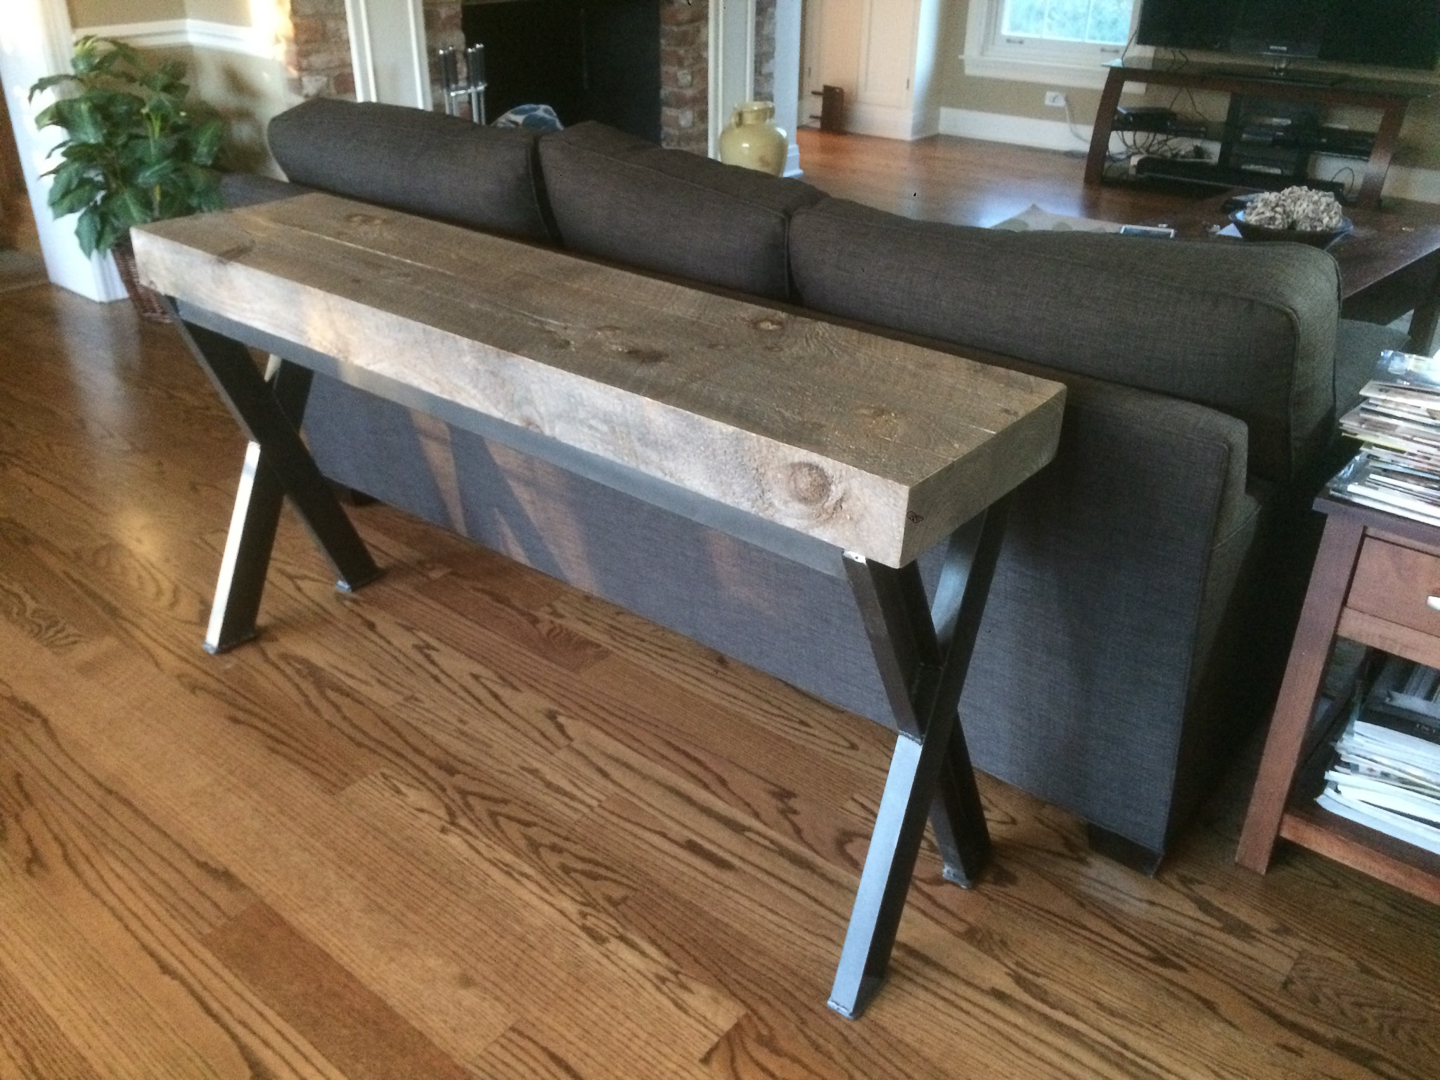 Astonishing Console Sofa Tables Hearthwoods Caraccident5 Cool Chair Designs And Ideas Caraccident5Info